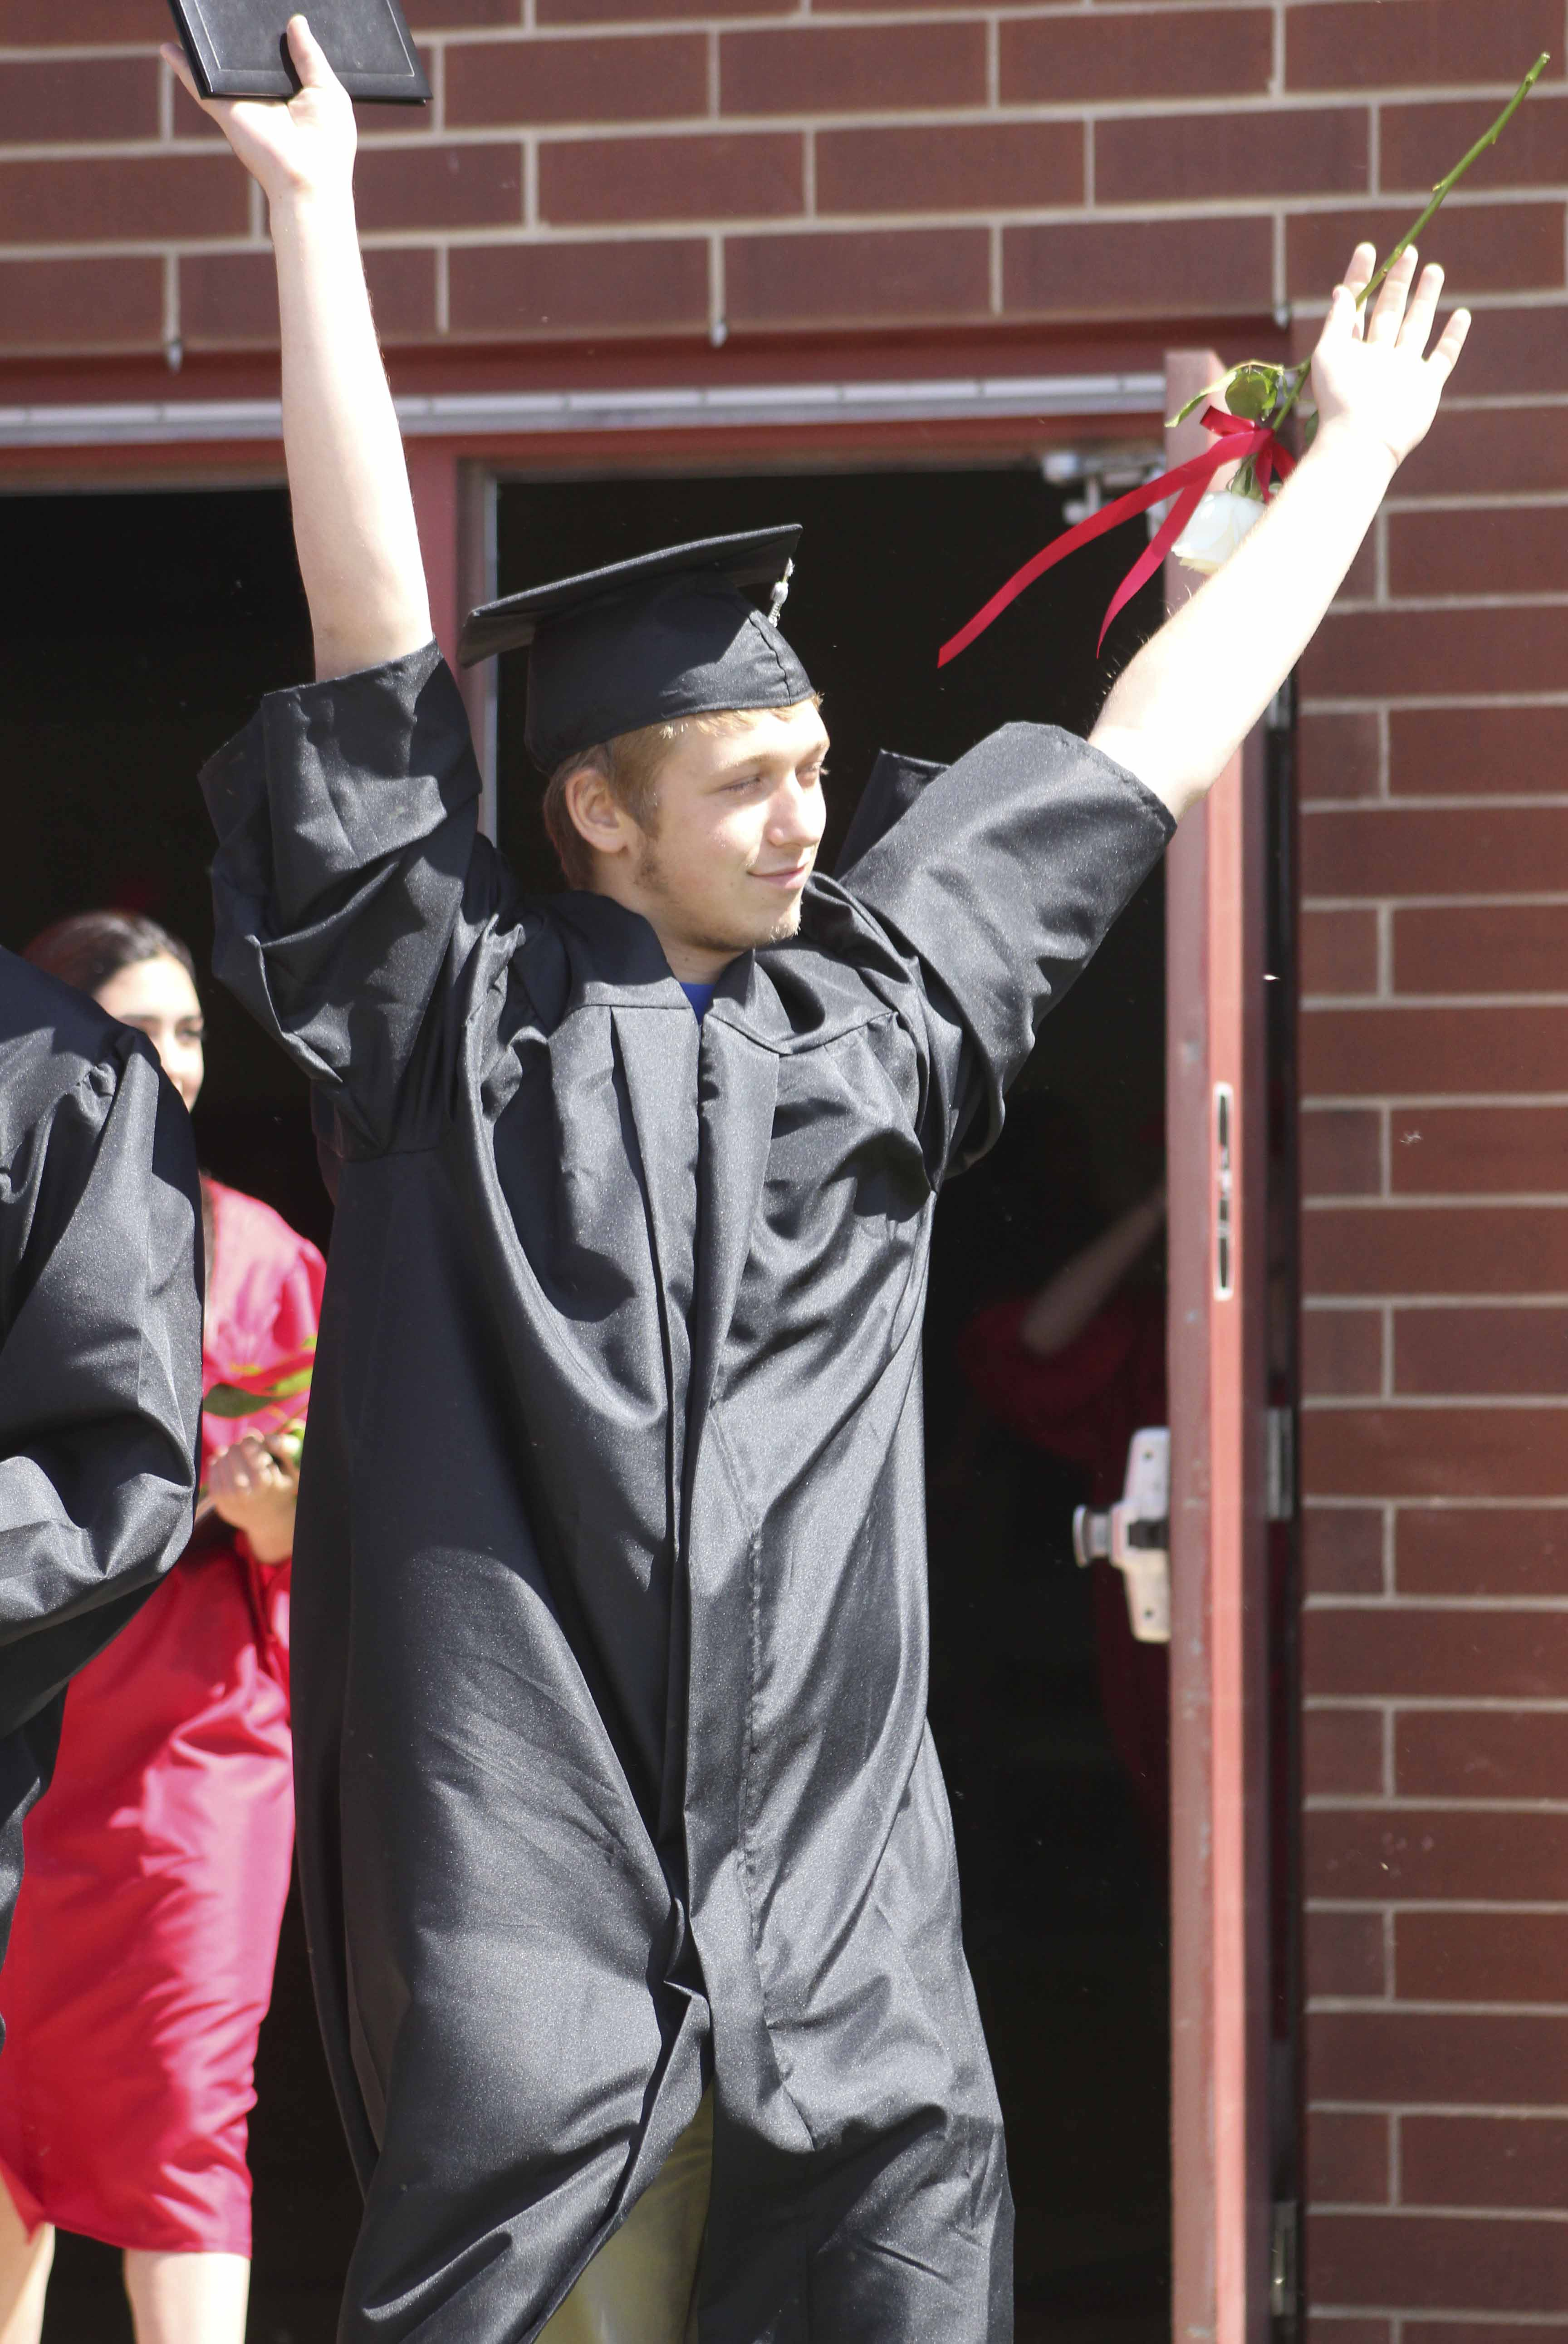 Jordan Breashears exults in the moment after Commencement.